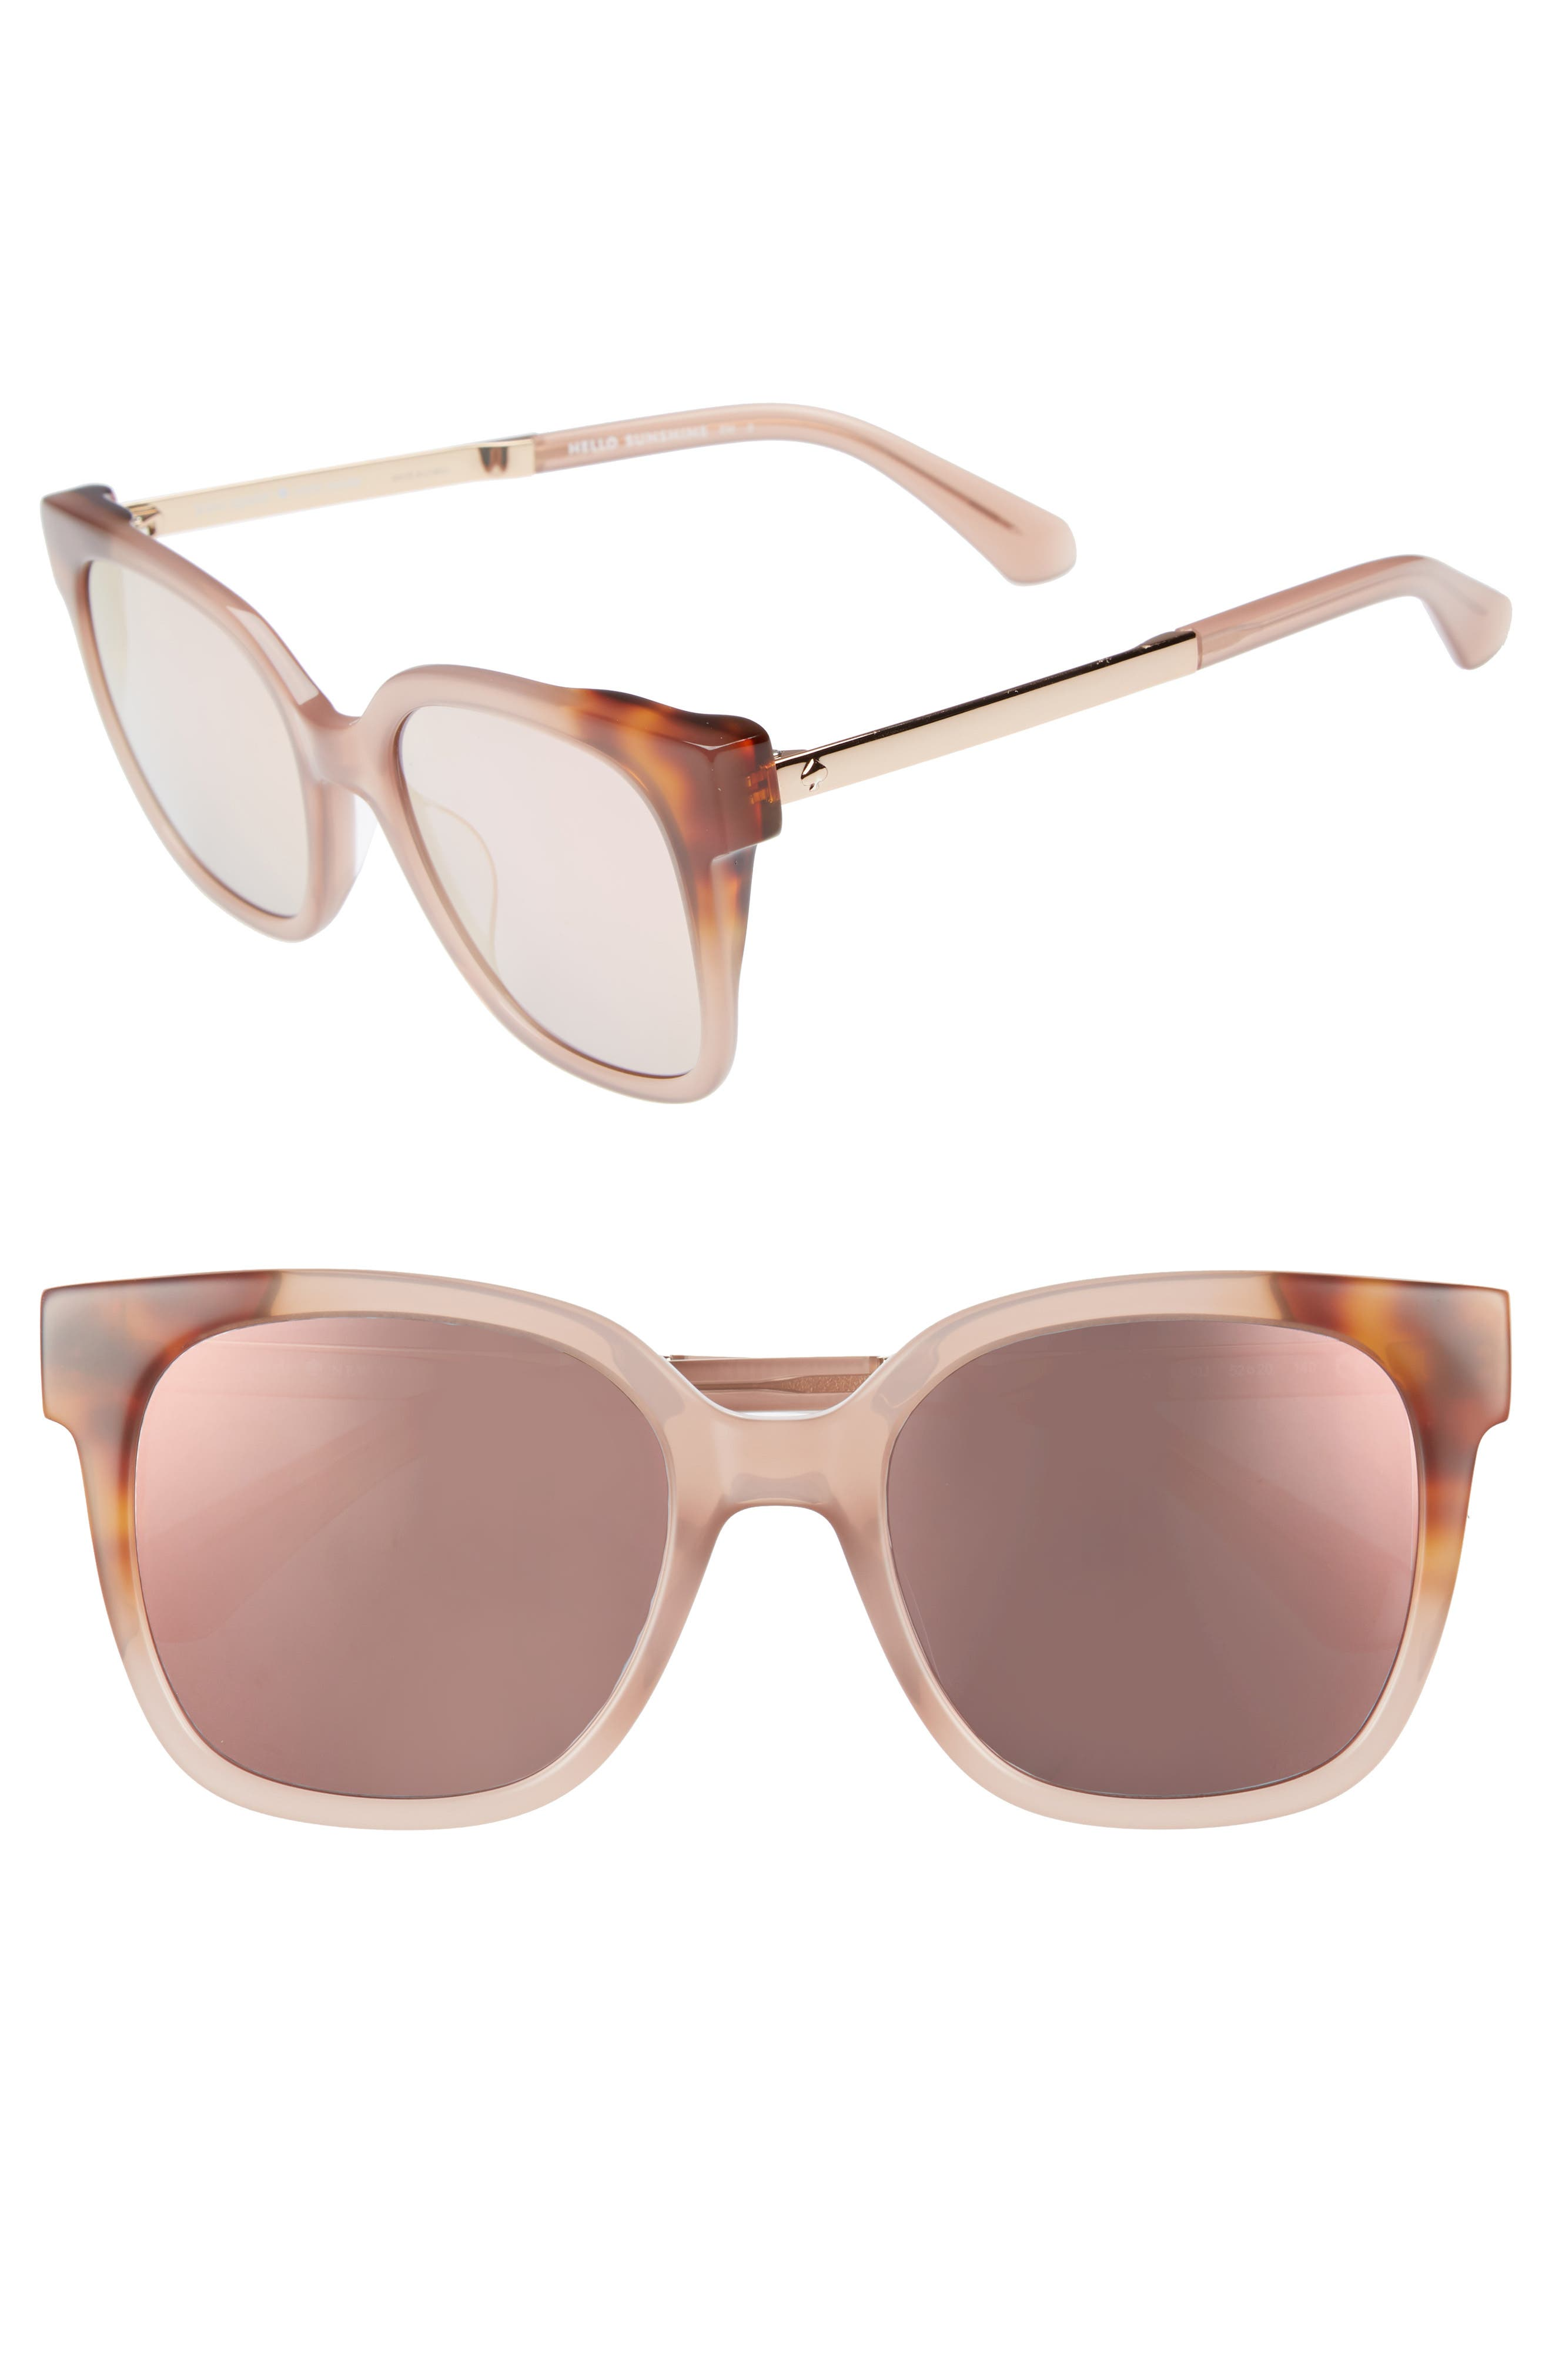 caelyns basic 52mm sunglasses,                             Main thumbnail 1, color,                             NUDE/ HAVANA/ HONEY